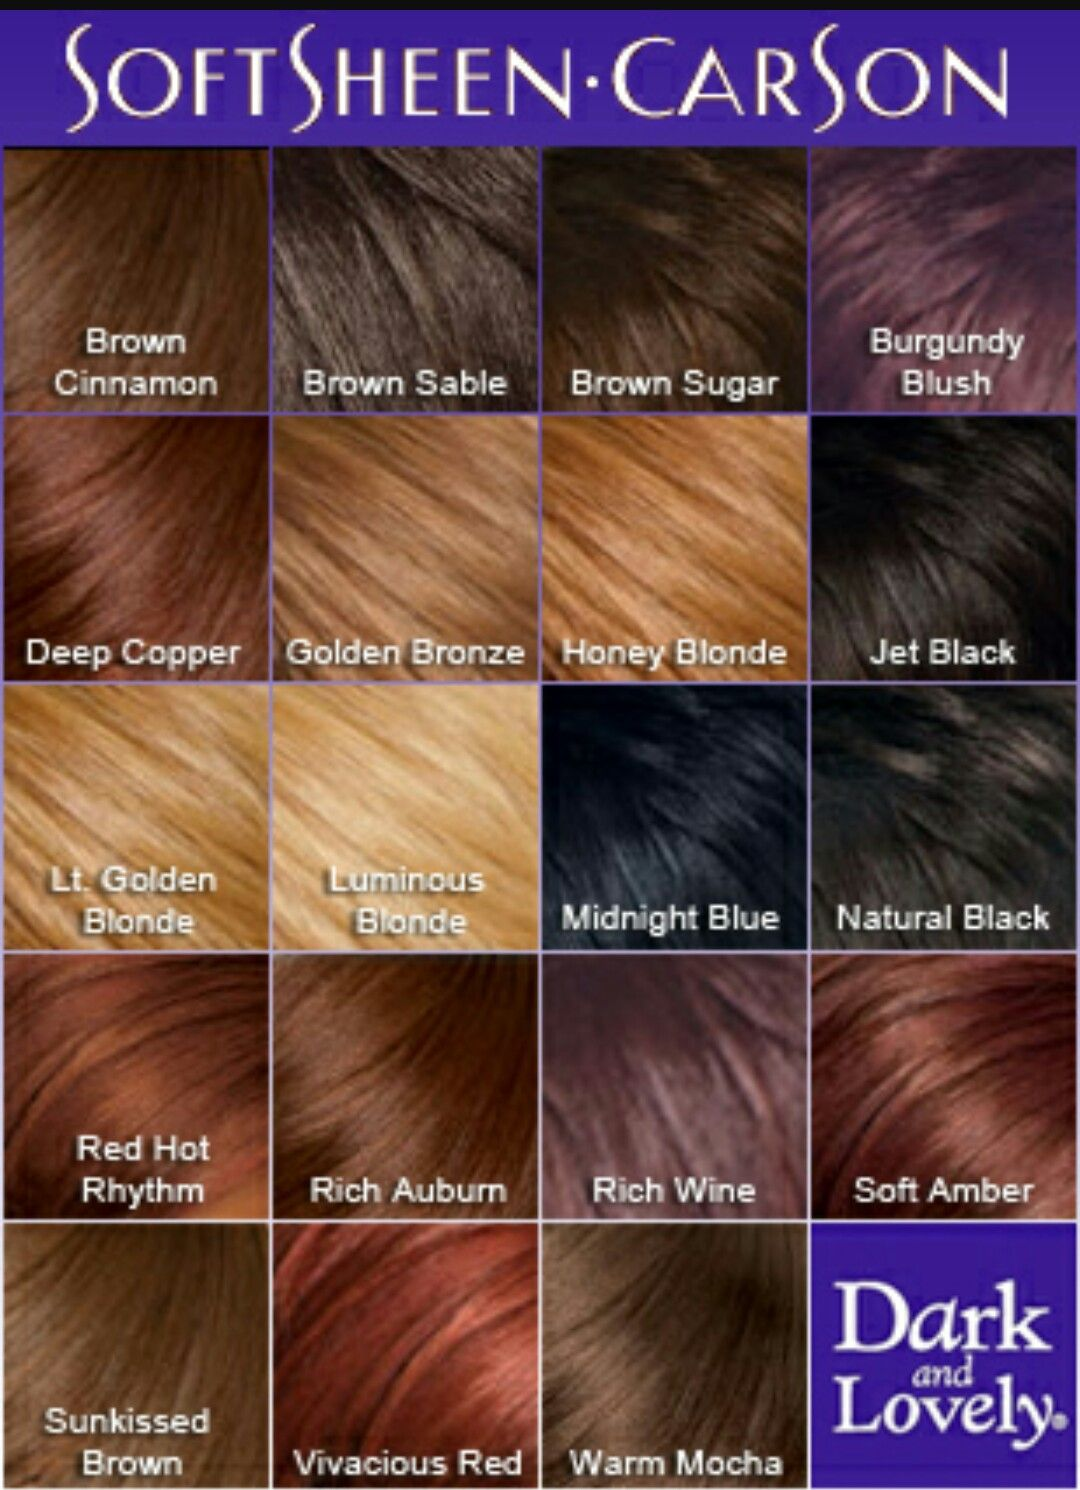 Pin By Meg Norsigian On Hair Makeup Hair Dye Colors Hair Color Chart Hair Dye Color Chart